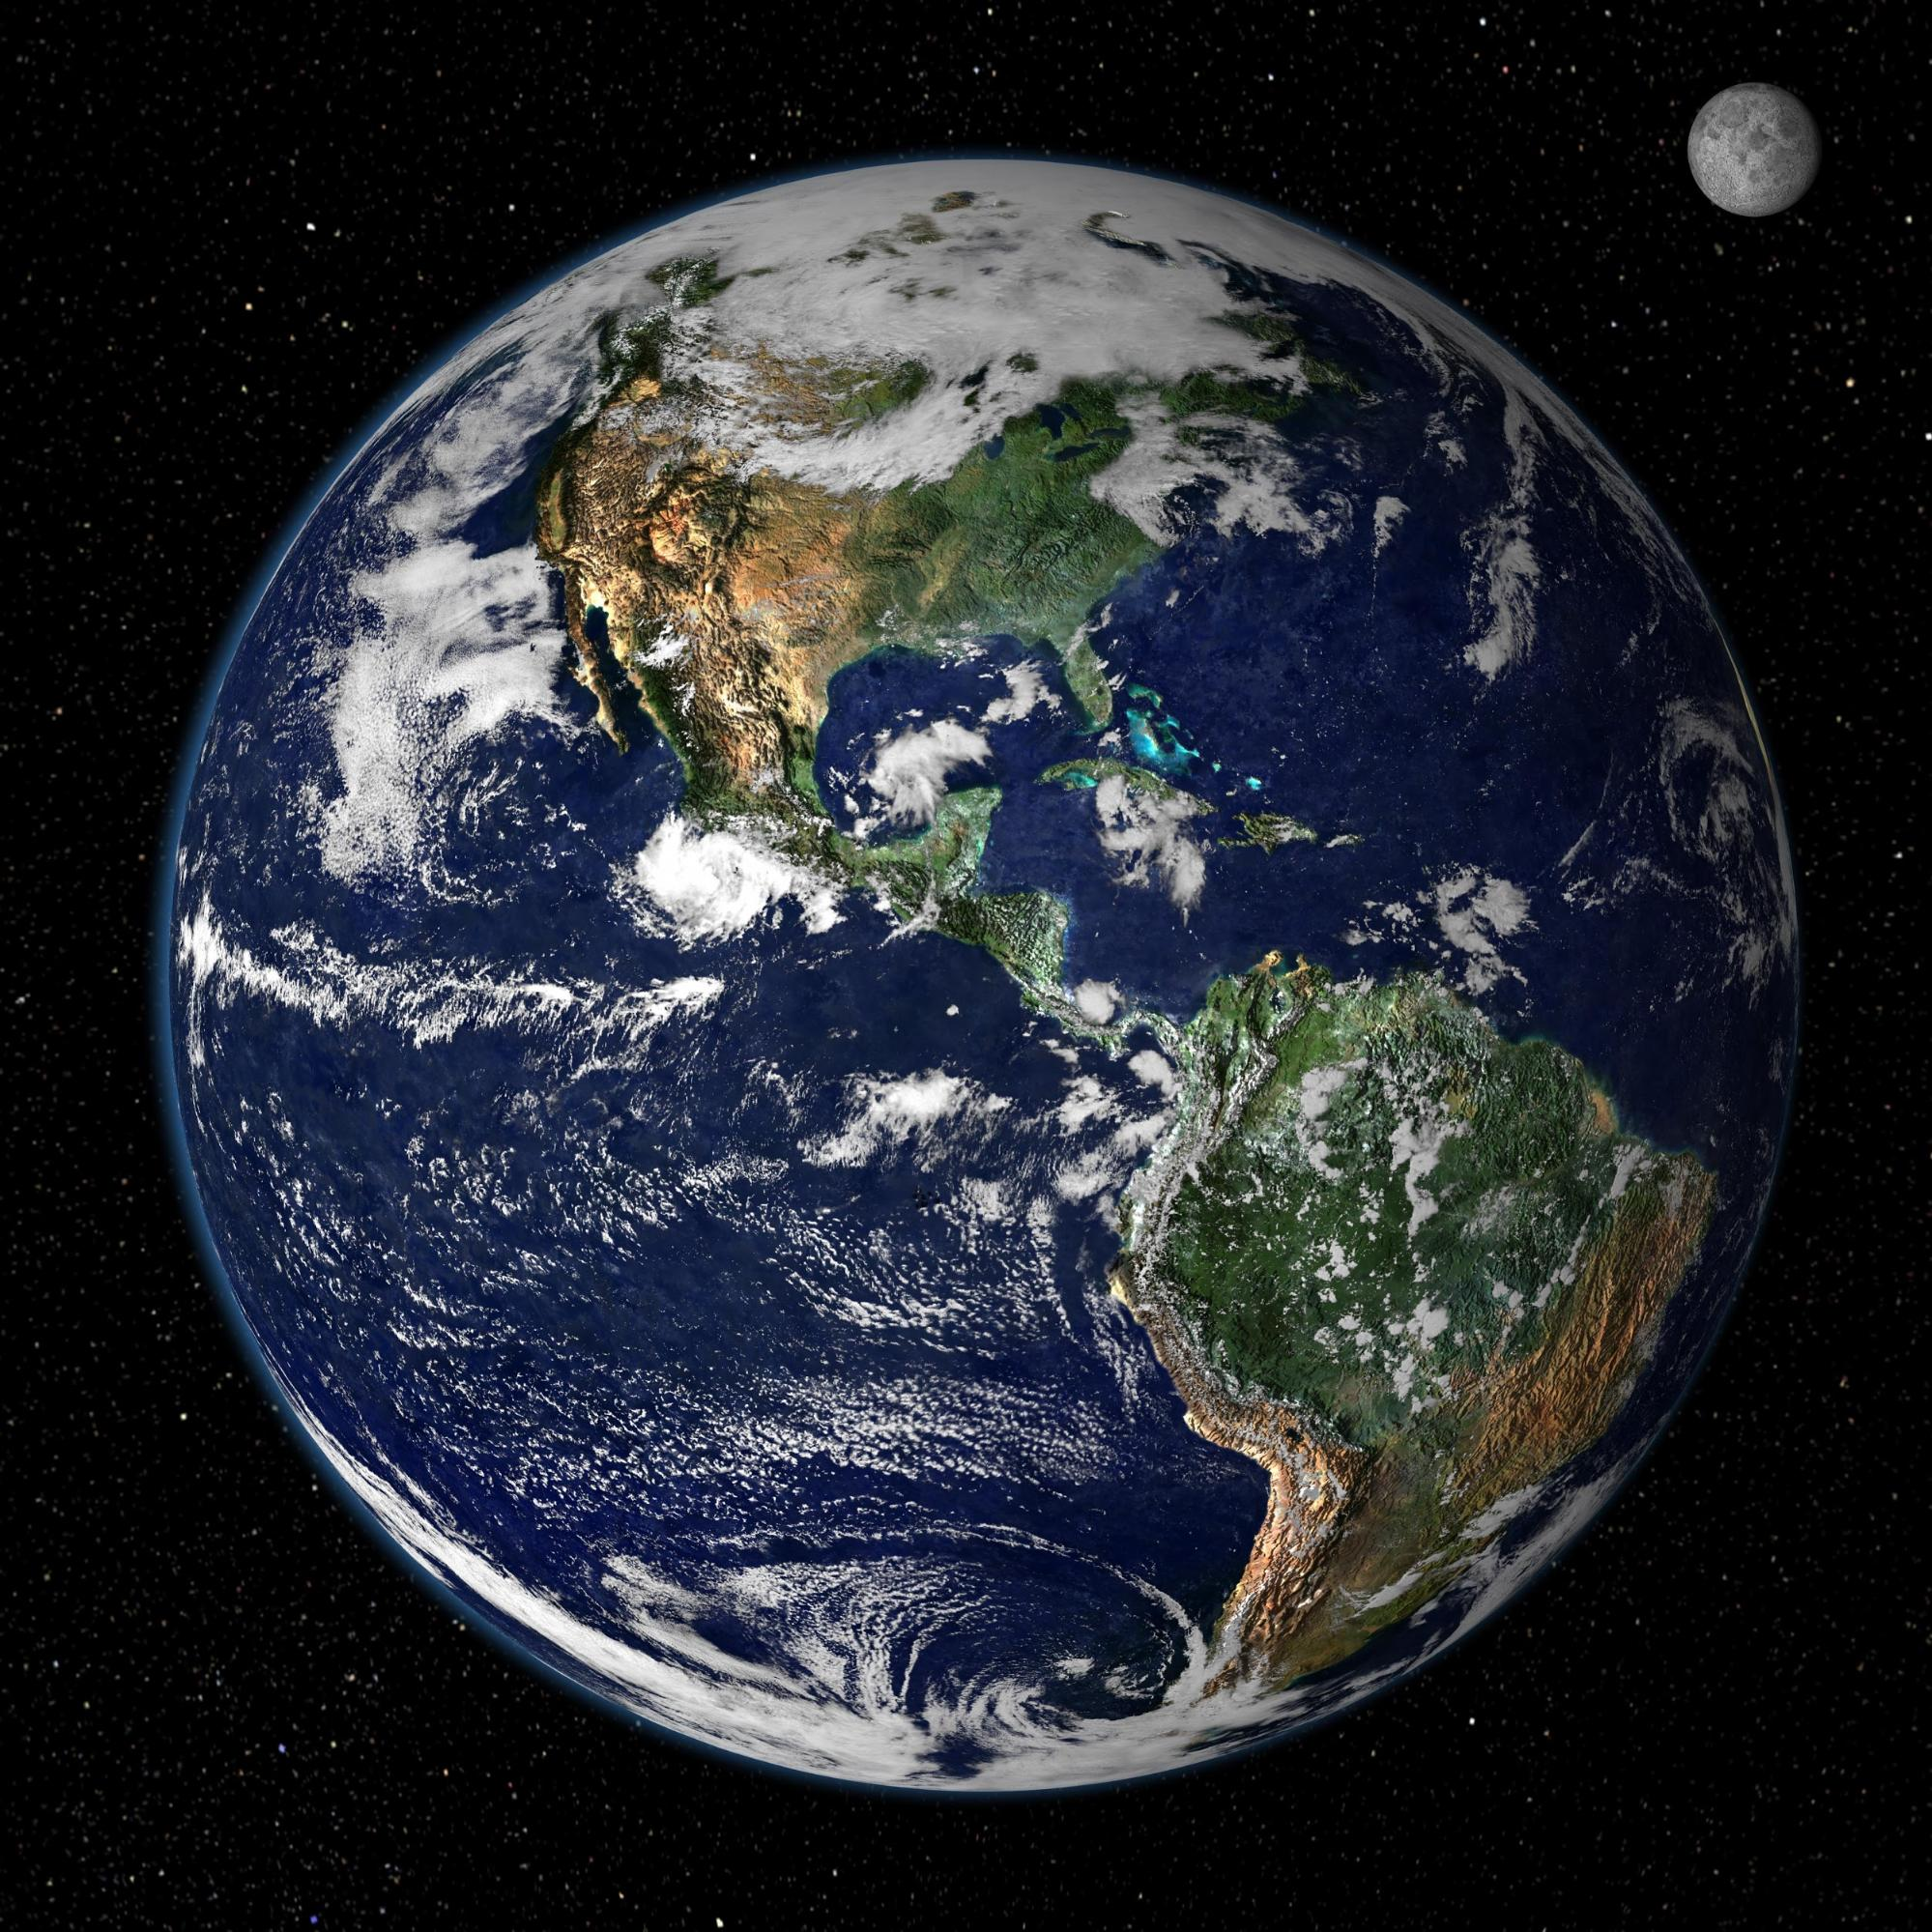 true color image of Earth